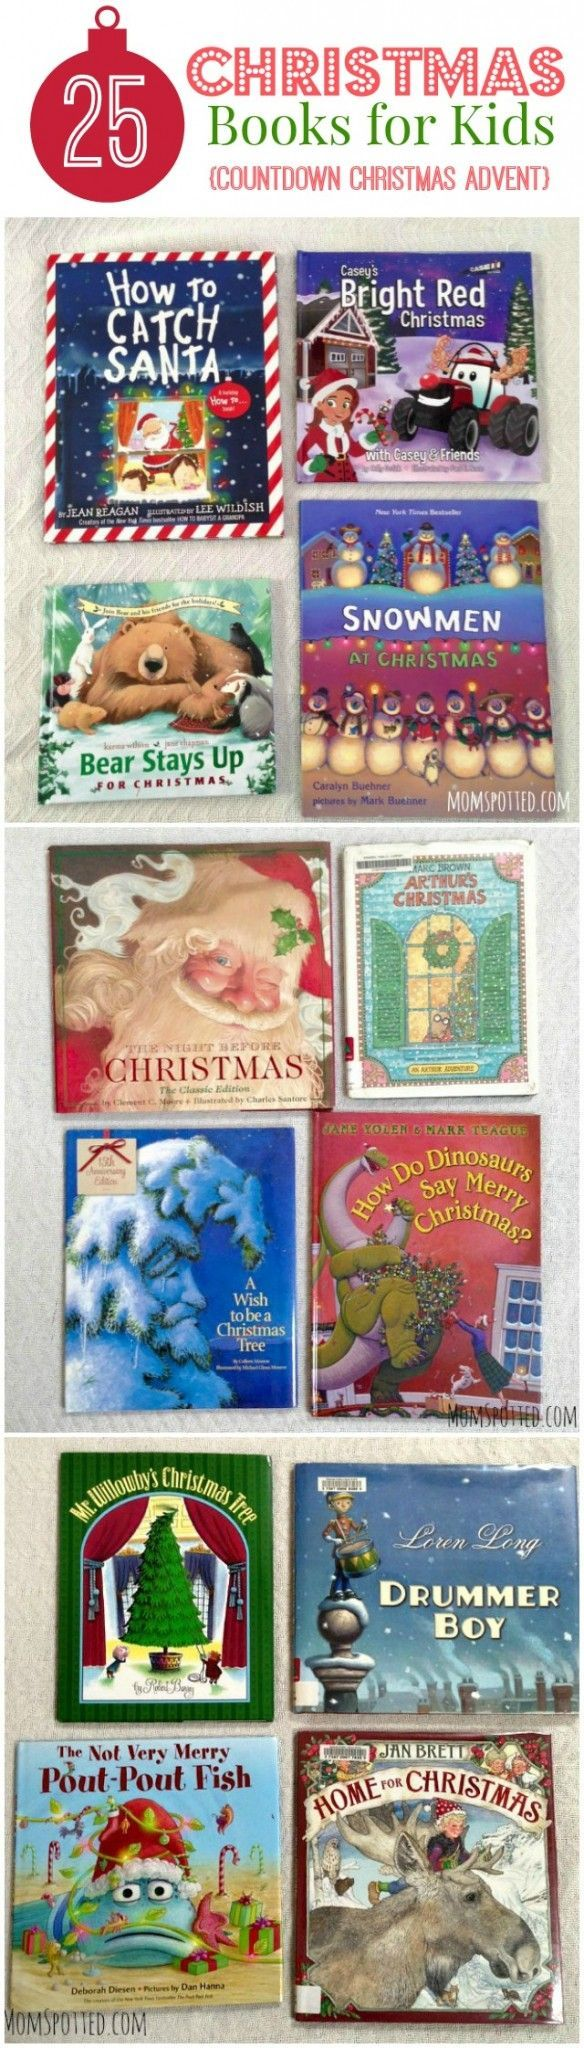 25 Days of Christmas Books for Kids {Countdown Christmas Advent}